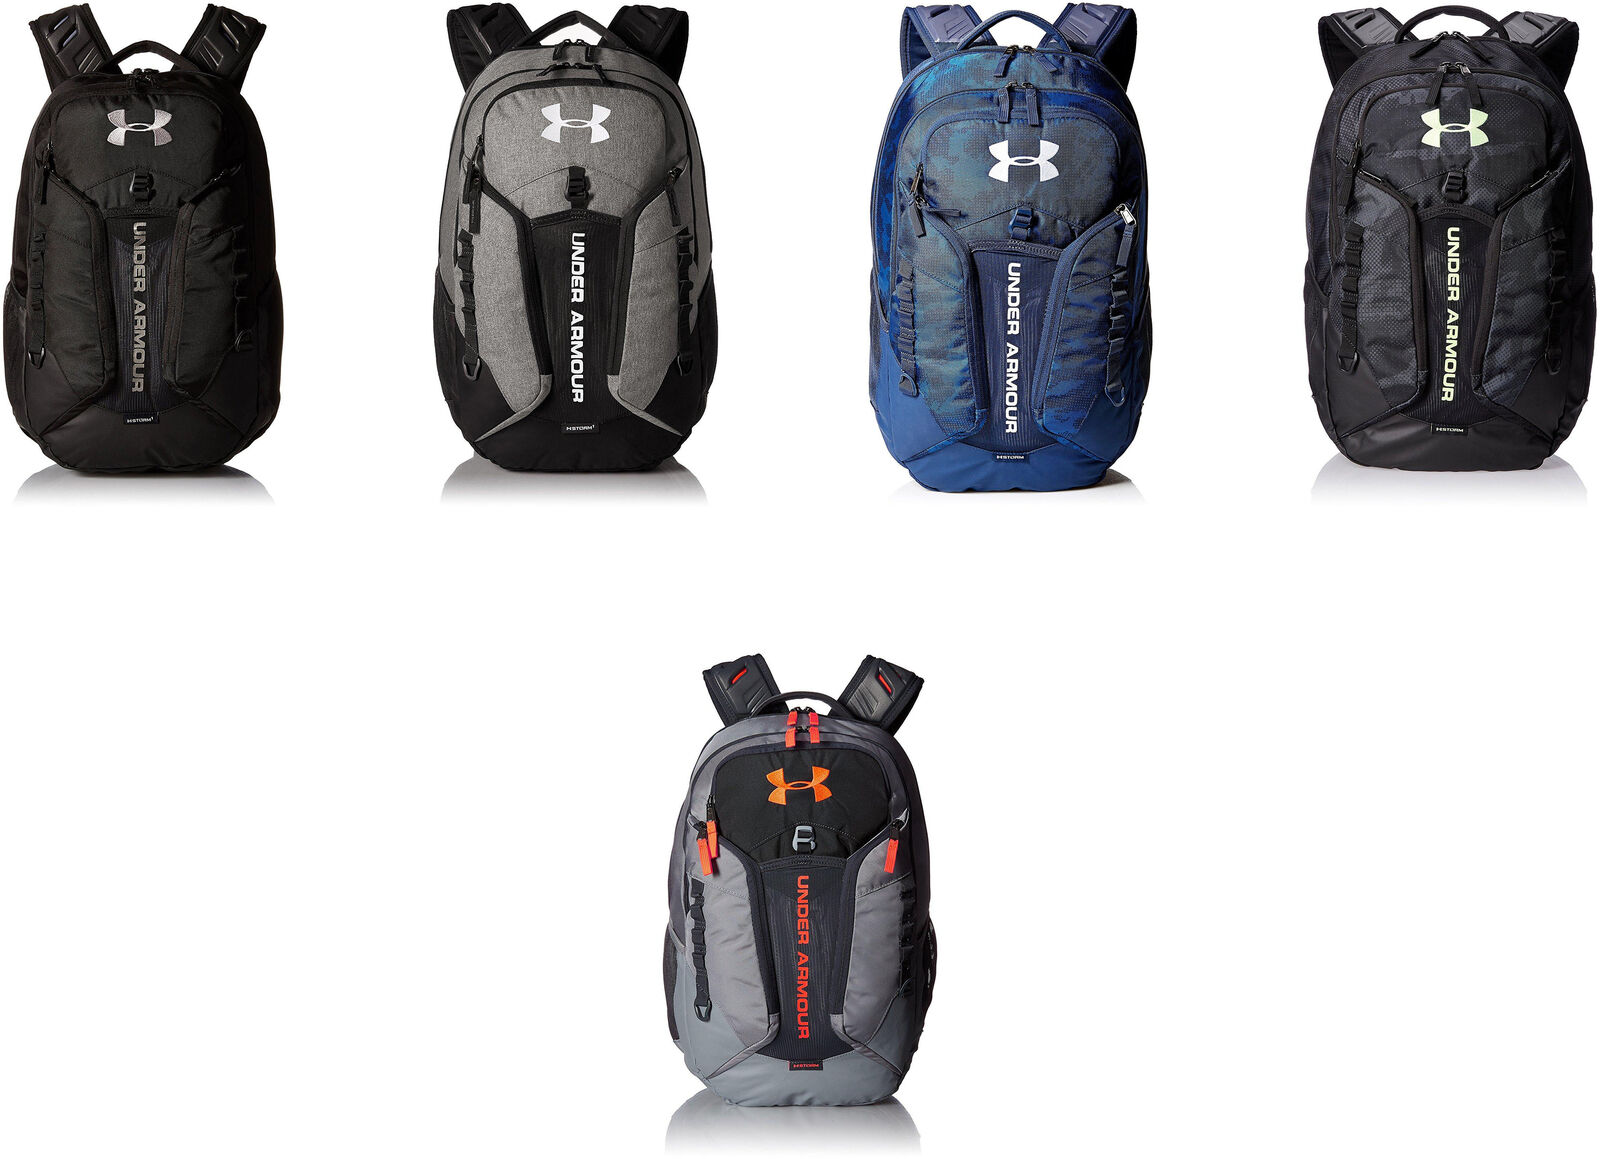 buy popular 523c3 0ed37 Details about Under Armour Storm Contender Backpack, 5 Colors